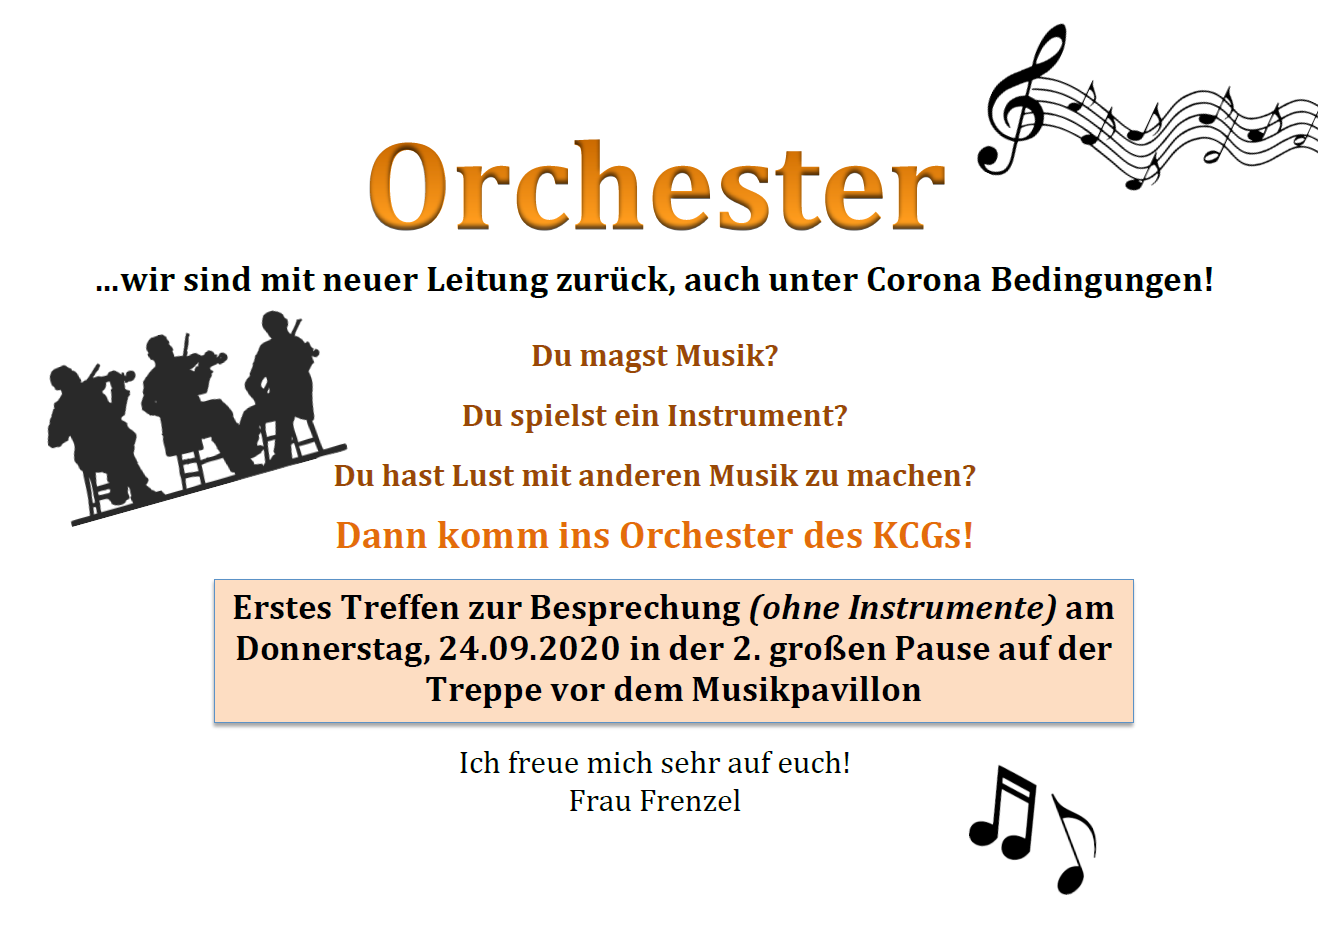 Orchester2020 21